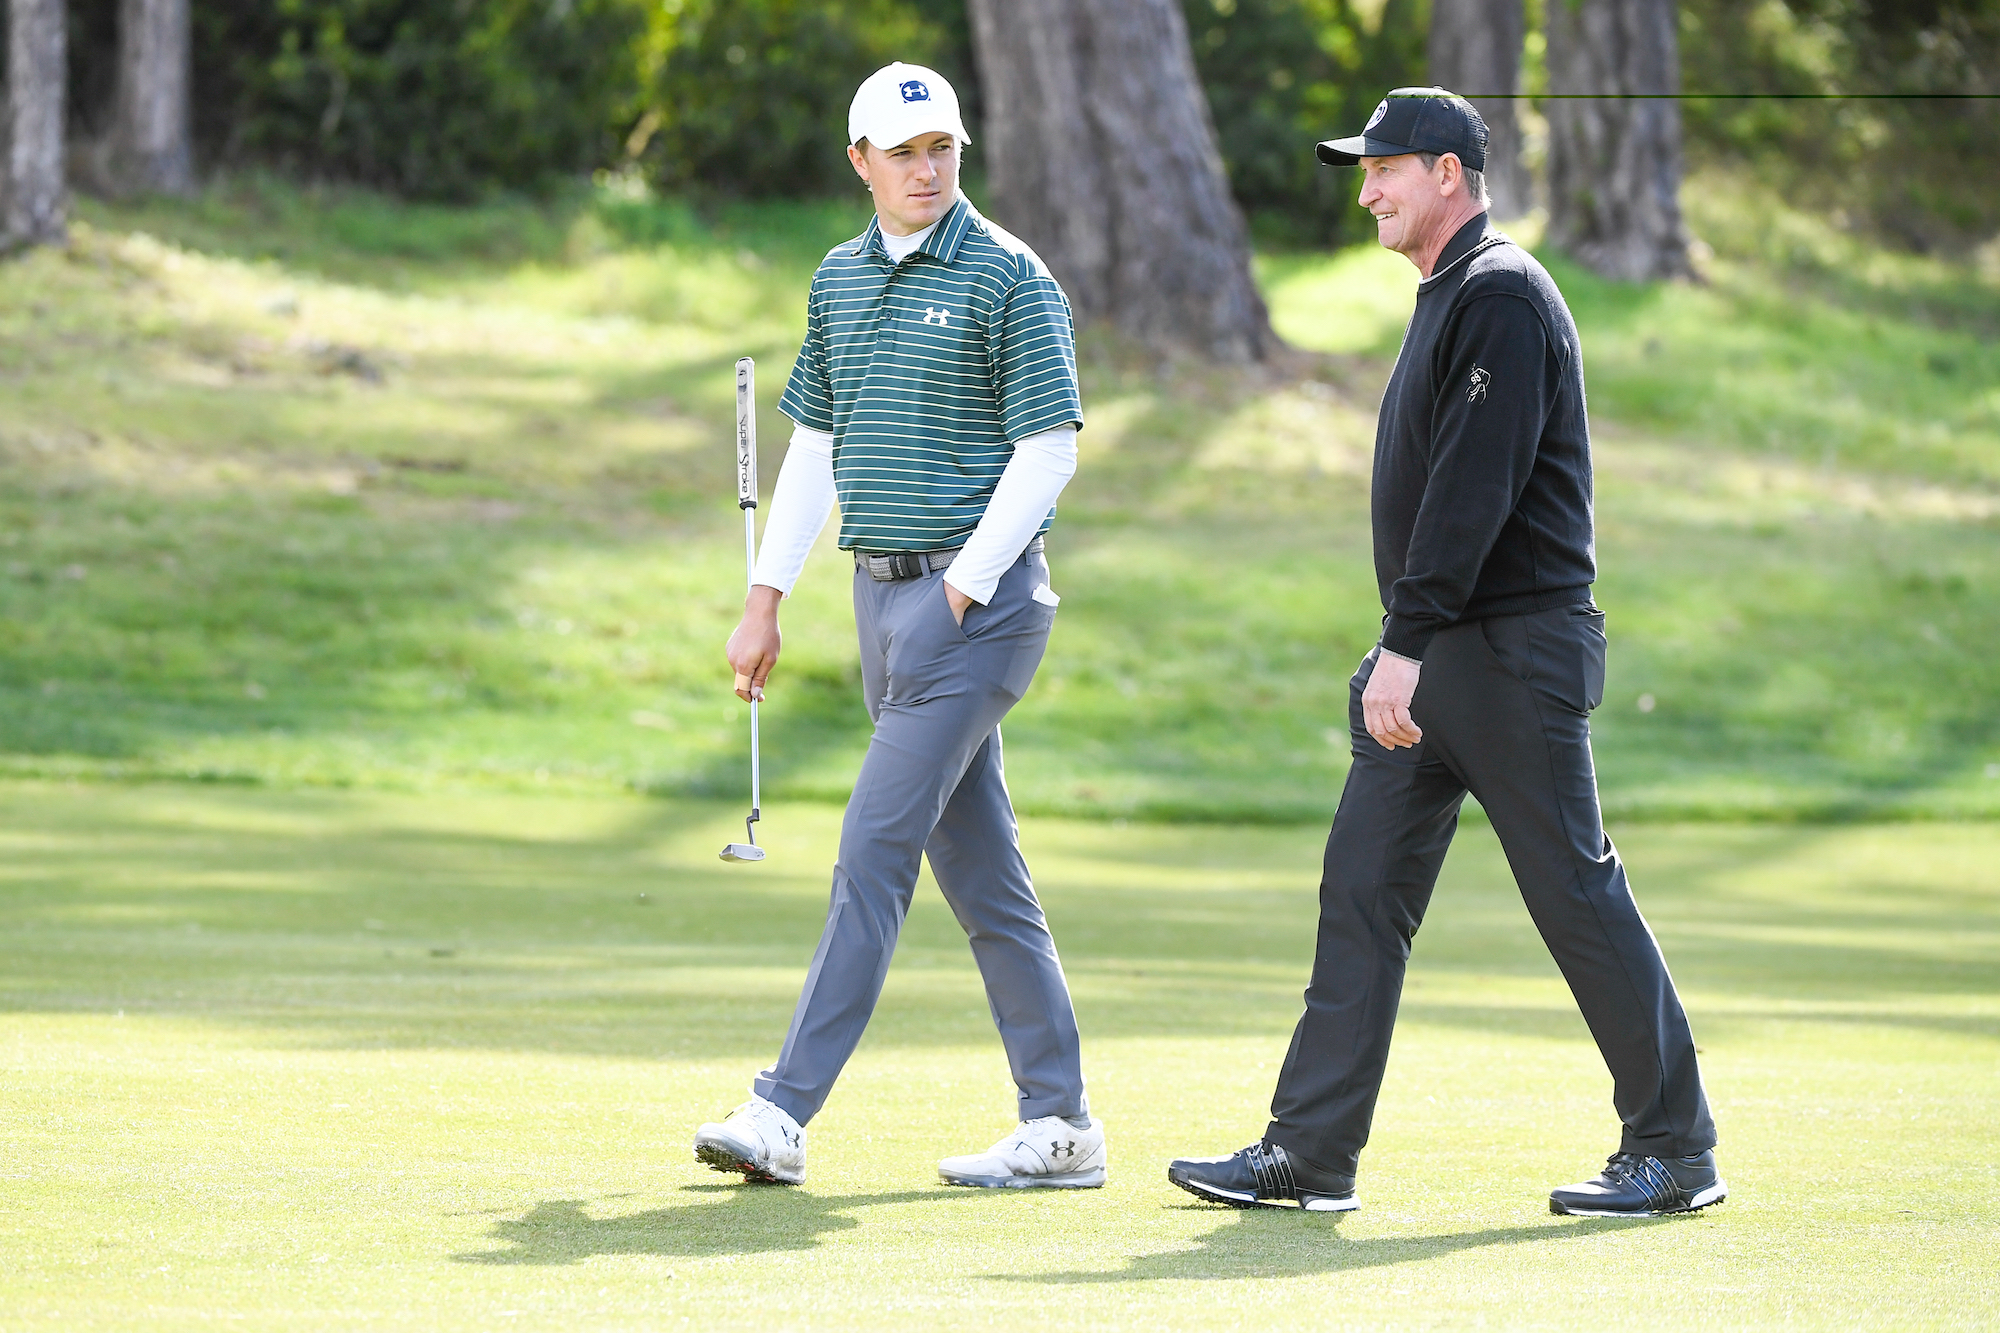 2019 AT&T Pebble Beach Pro-Am: Round 1 - Jordan Walks Up No. 18 With Wayne Gretzky